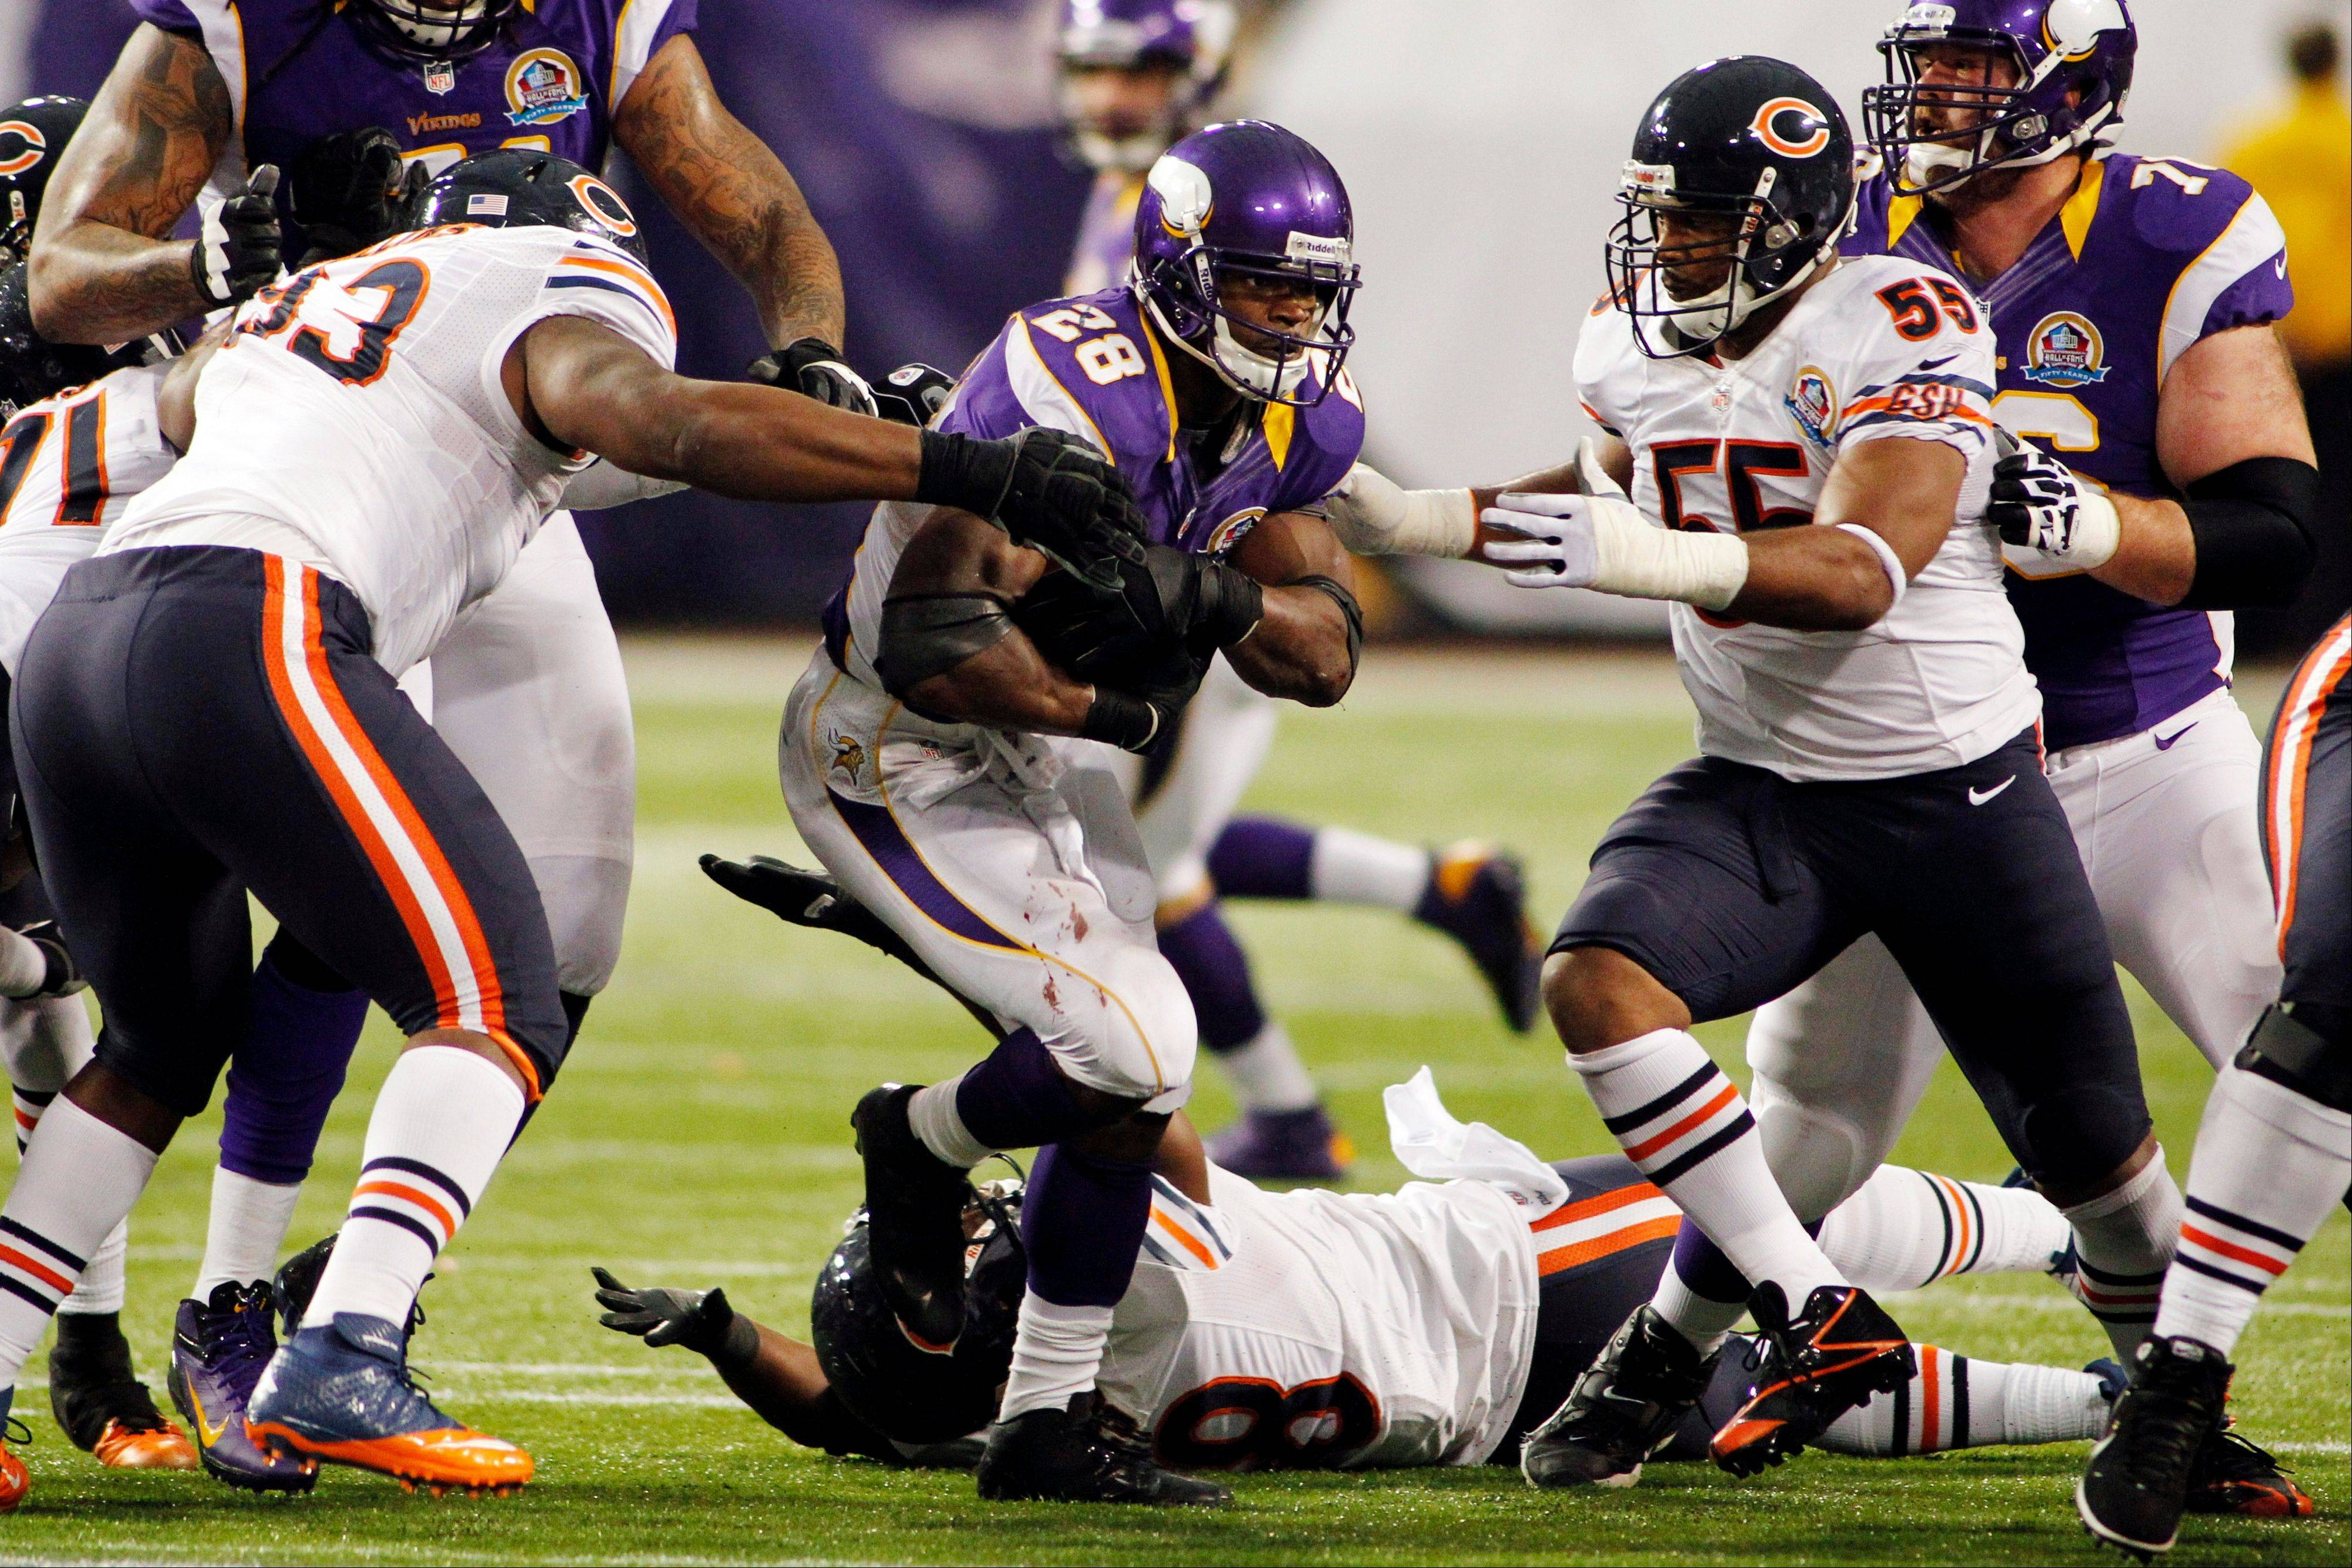 Vikings running back Adrian Peterson (28) rushes between Chicago Bears' Nate Collins, left, and Lance Briggs, right, during the second half of an NFL football game, Sunday, Dec. 9, 2012, in Minneapolis. The Vikings won 21-14.